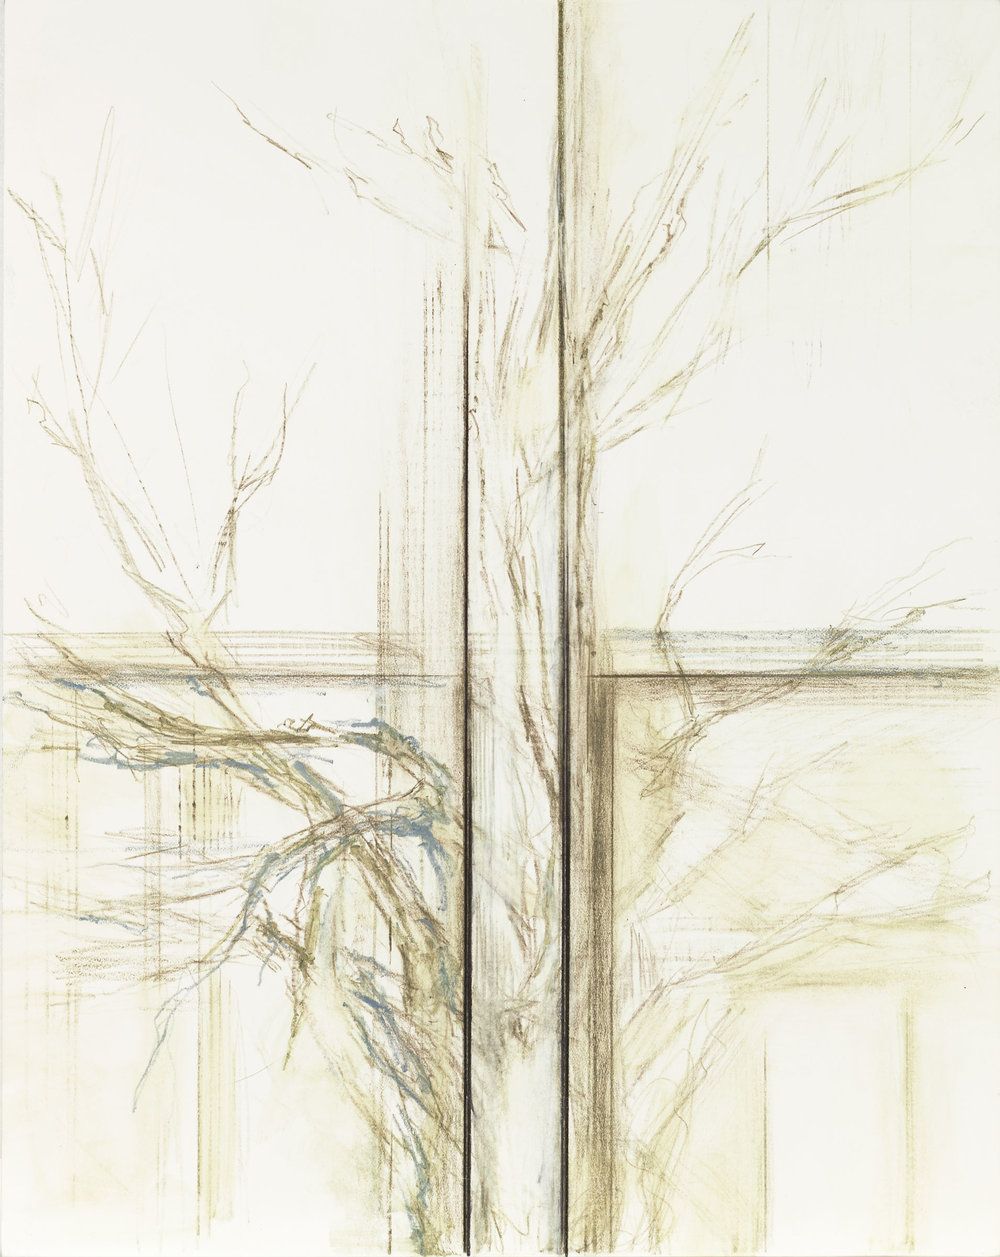 Hedda Sterne,  Untitled , 1994, Graphite, colored pencil on paper, 14 1/2 in. x 11 1/2 in. (36.83 cm x 29.21 cm)